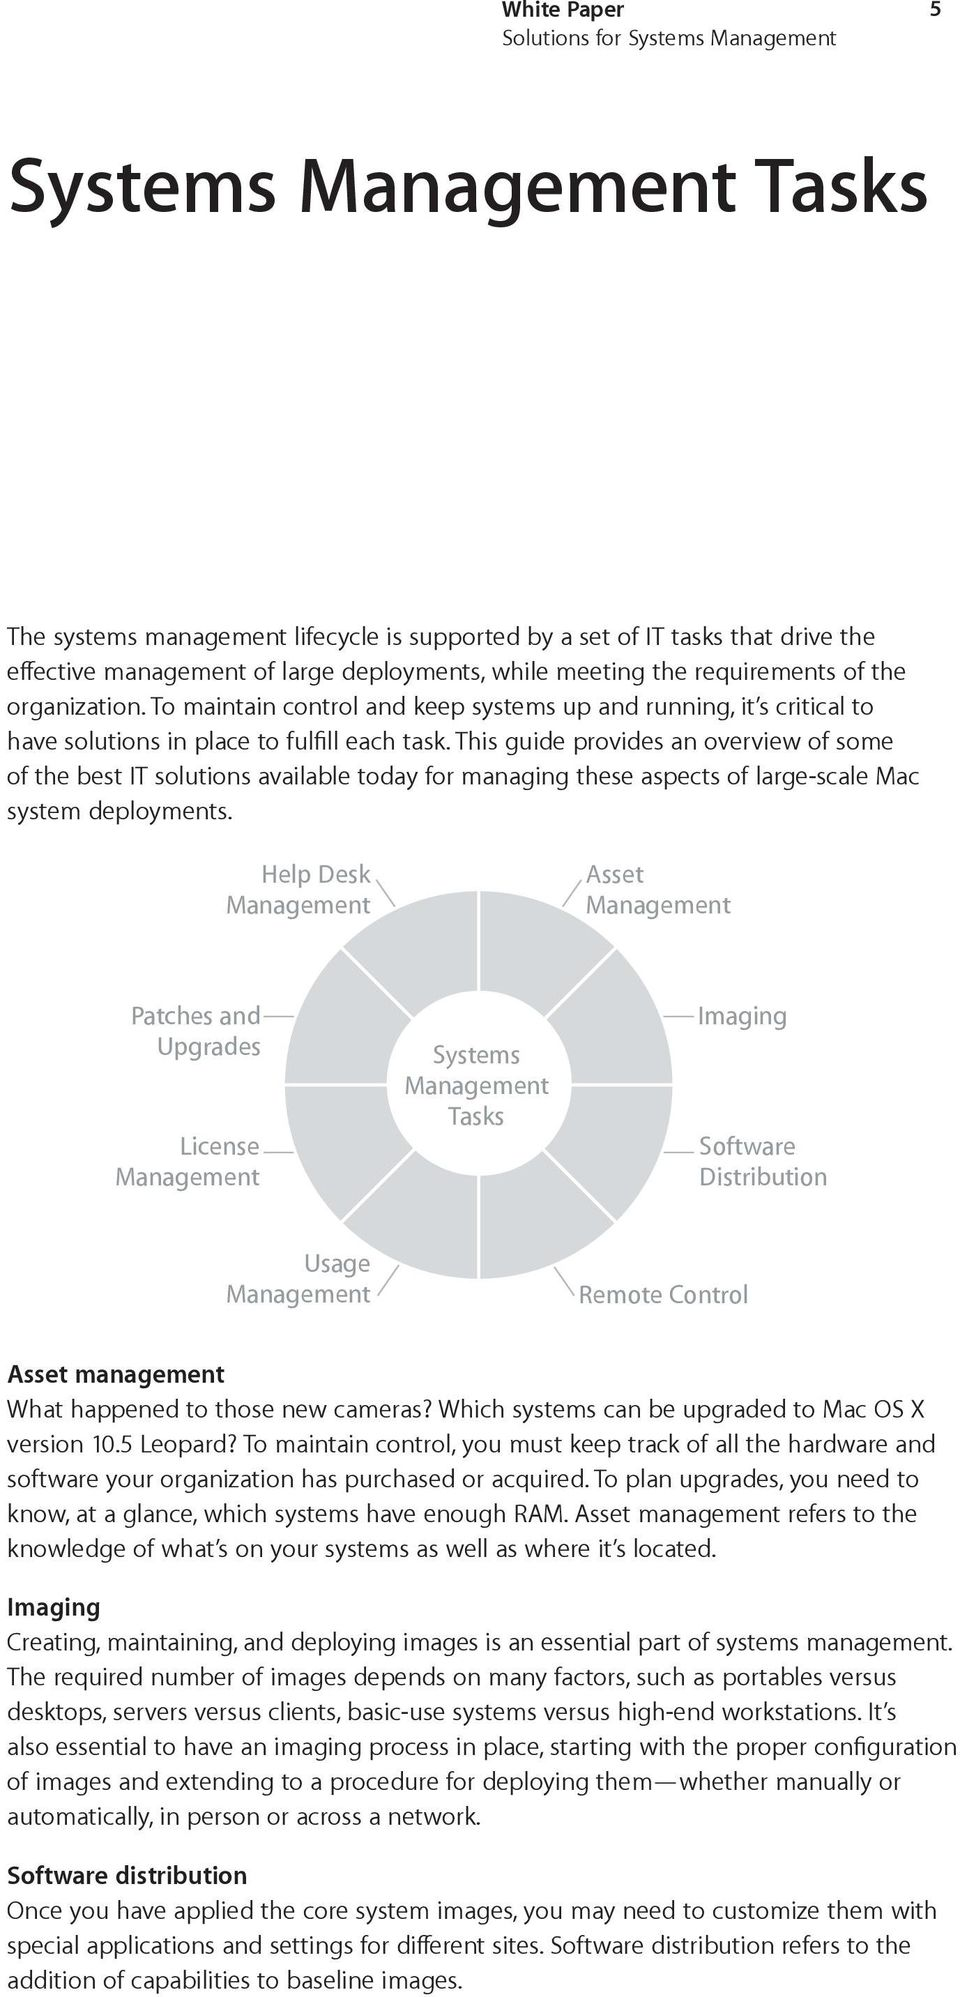 This guide provides an overview of some of the best IT solutions available today for managing these aspects of large-scale Mac system deployments.